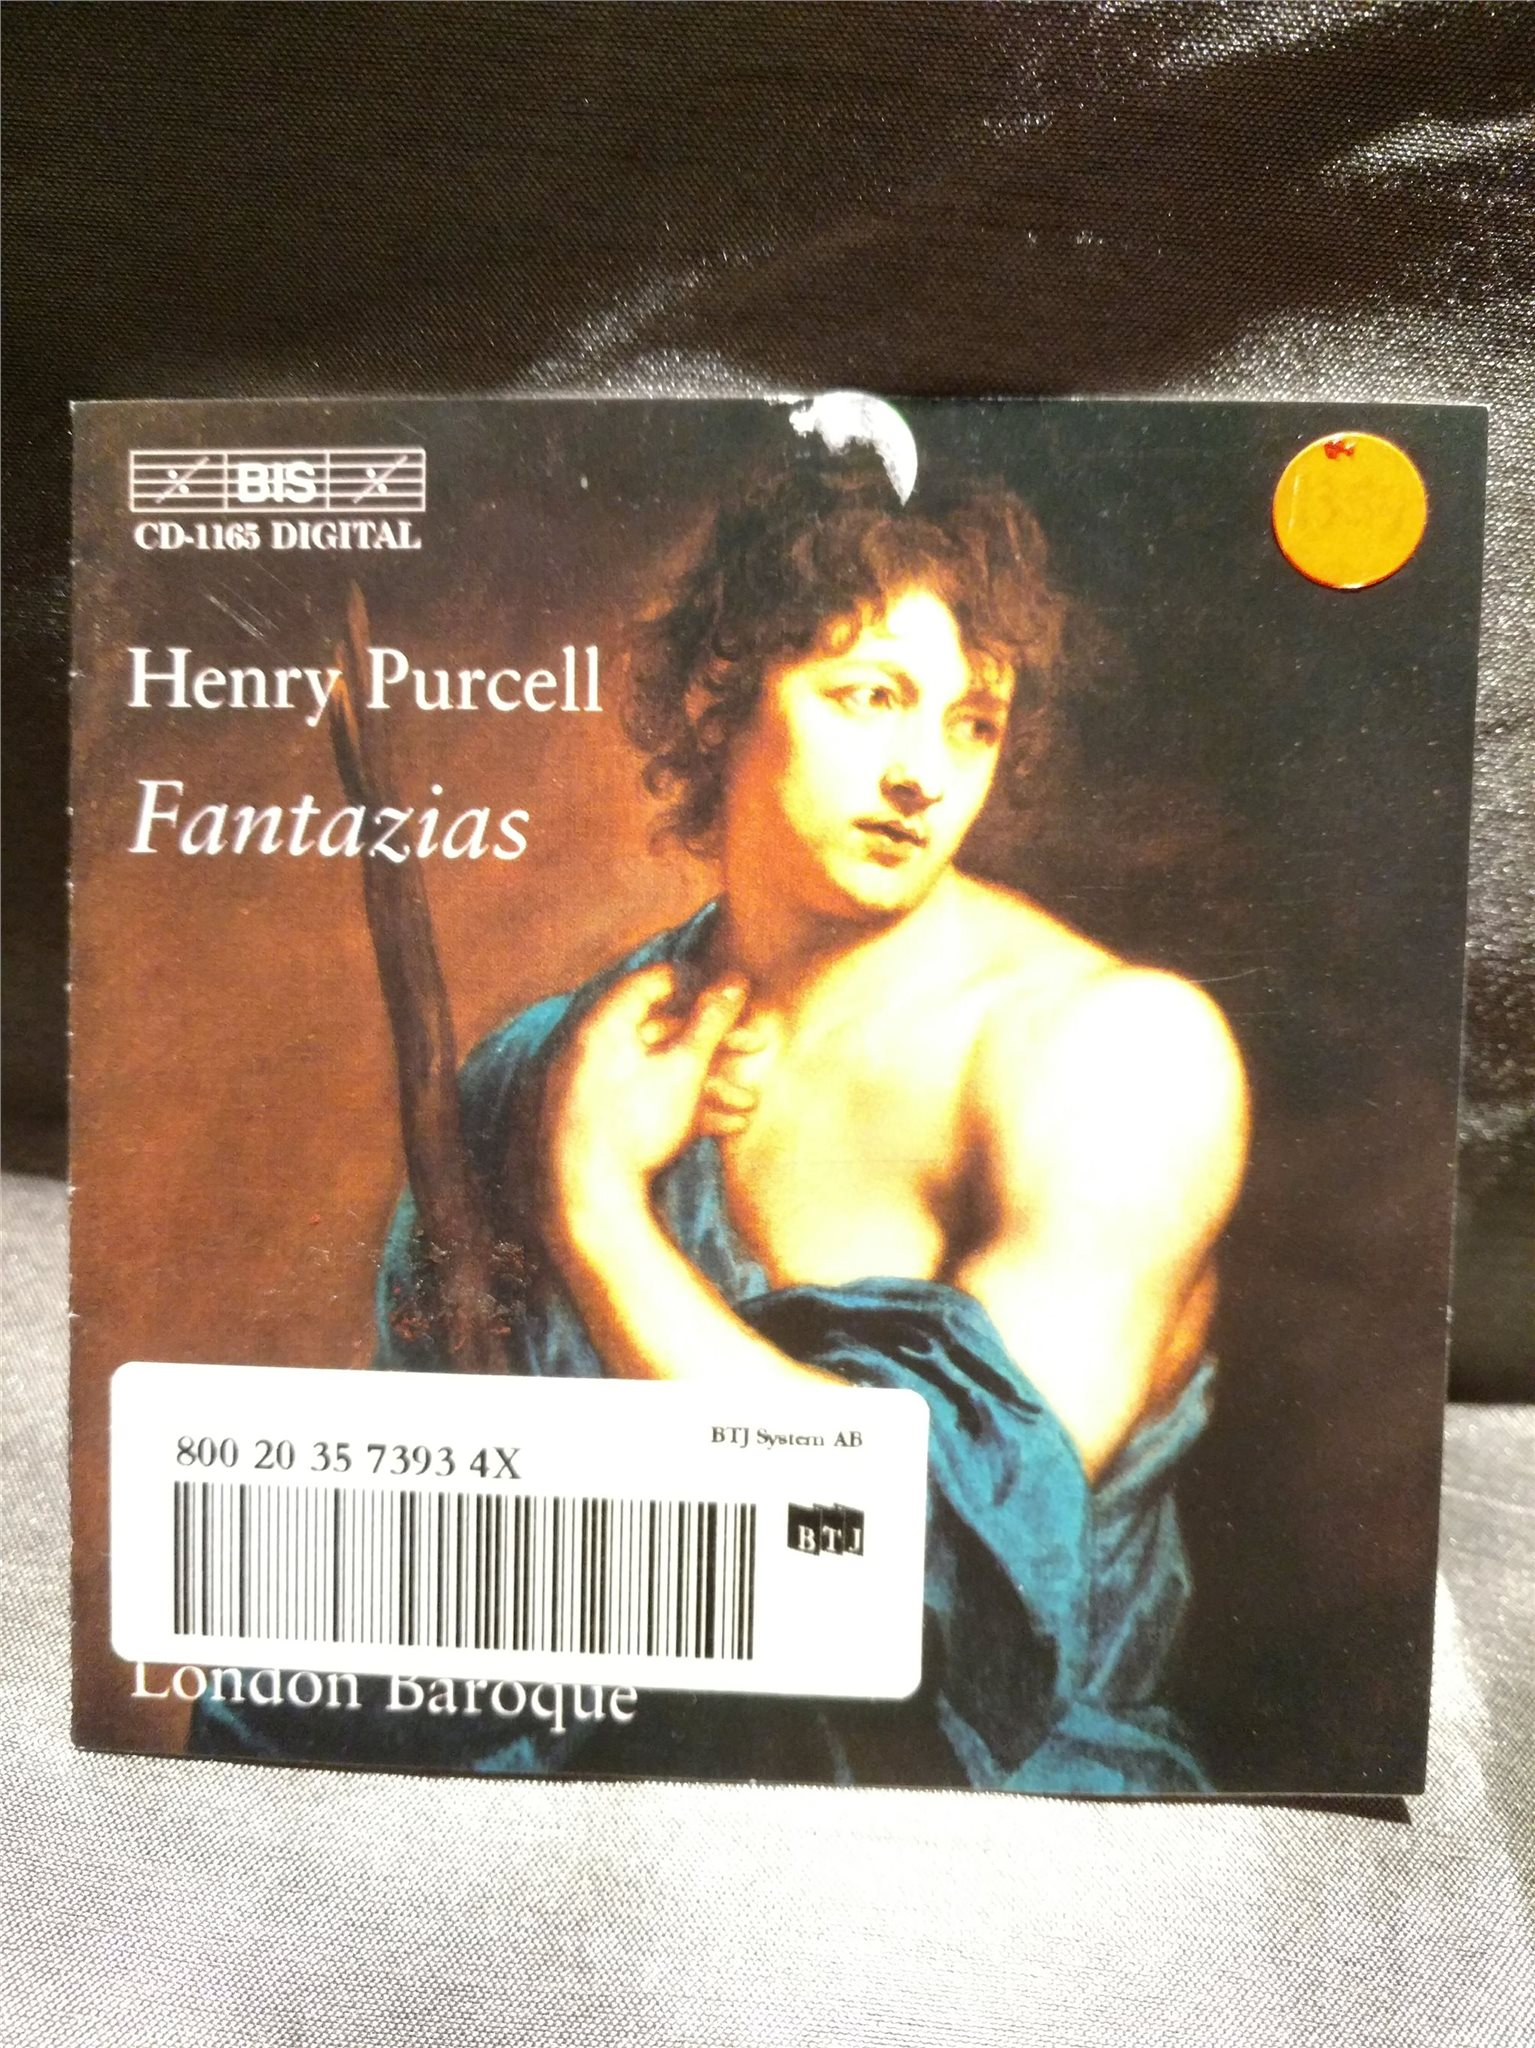 04ddc5d3a Henry Purcell. Fantazias. London Baroque (336300875) ᐈ Köp på Tradera